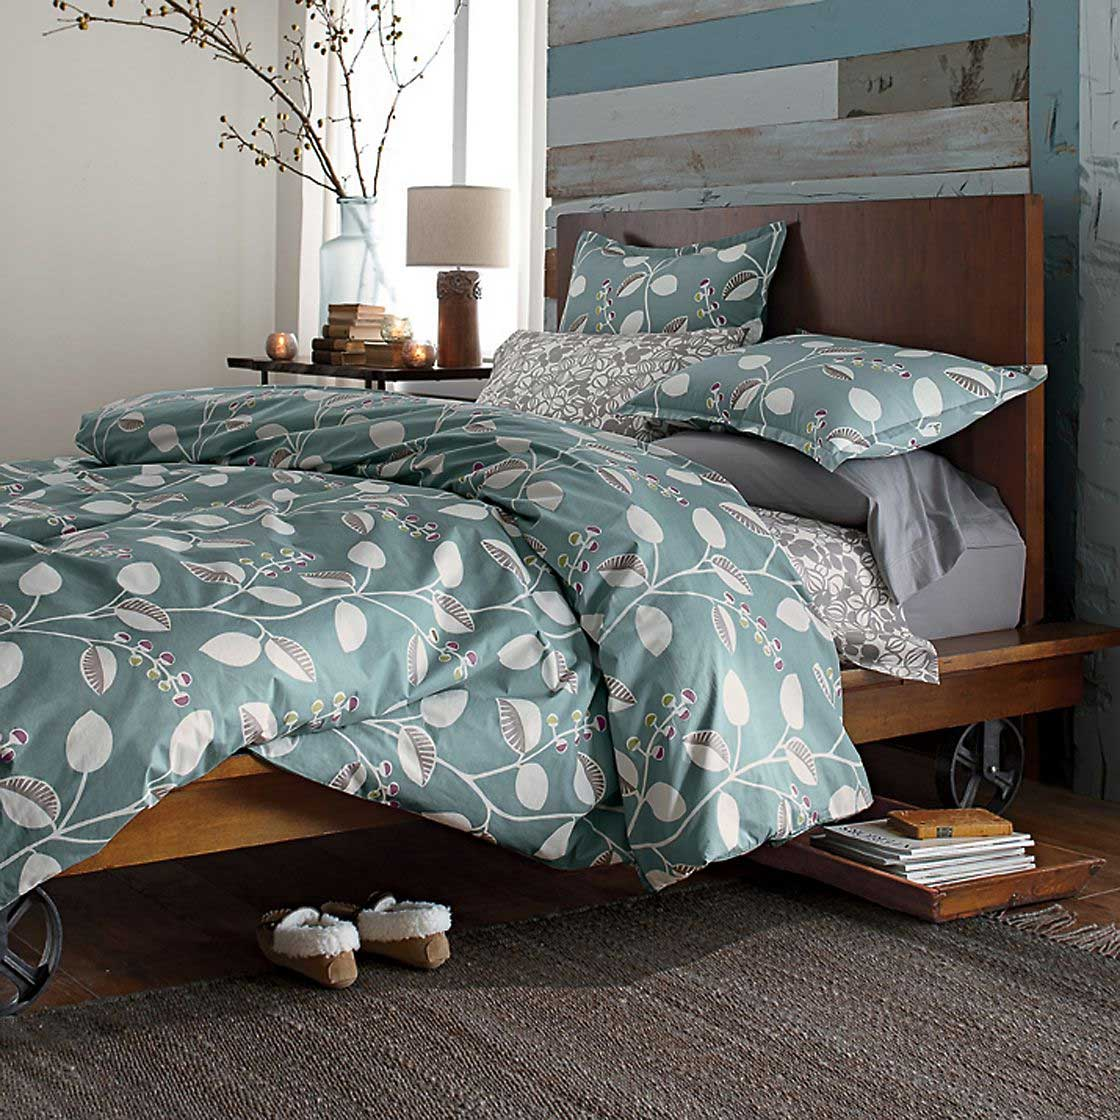 Organic Bedding Options-The-Company-Store-Organic-Bedding-in-Blue